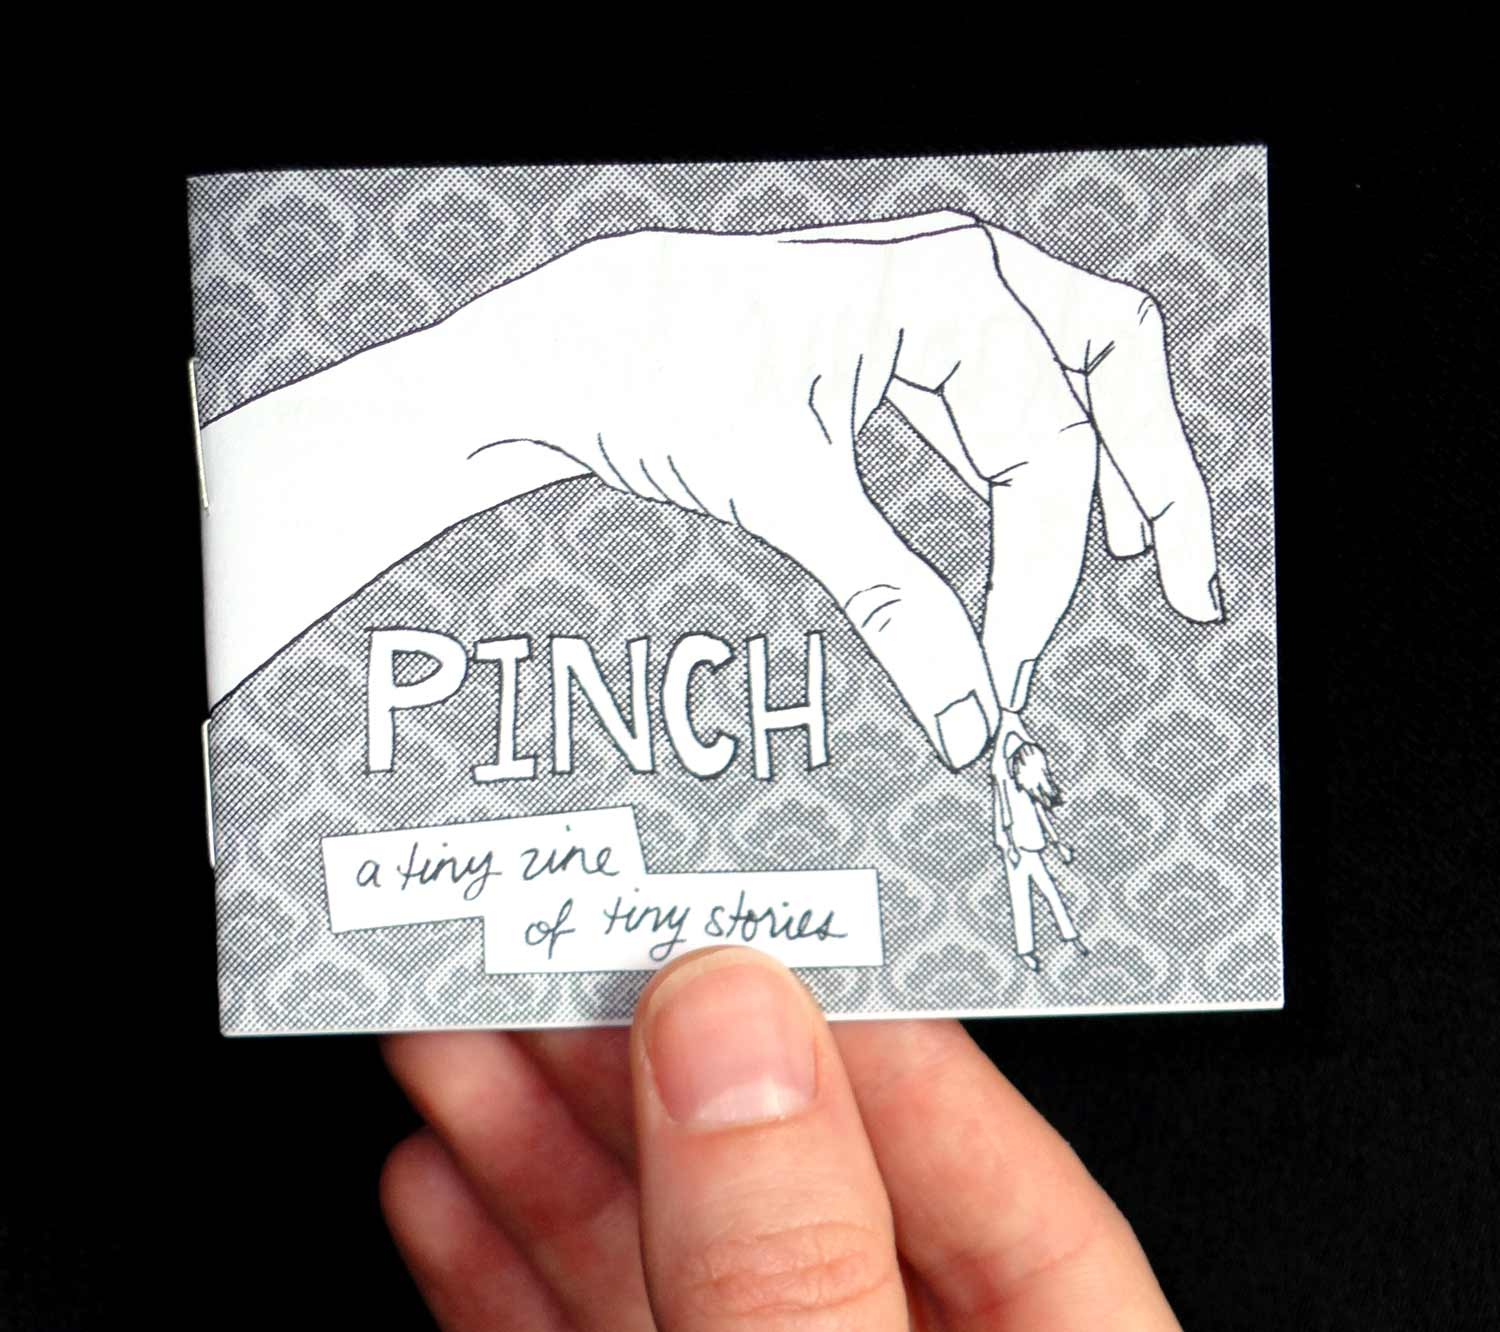 Graphic design, illustration, and layout for Pinch